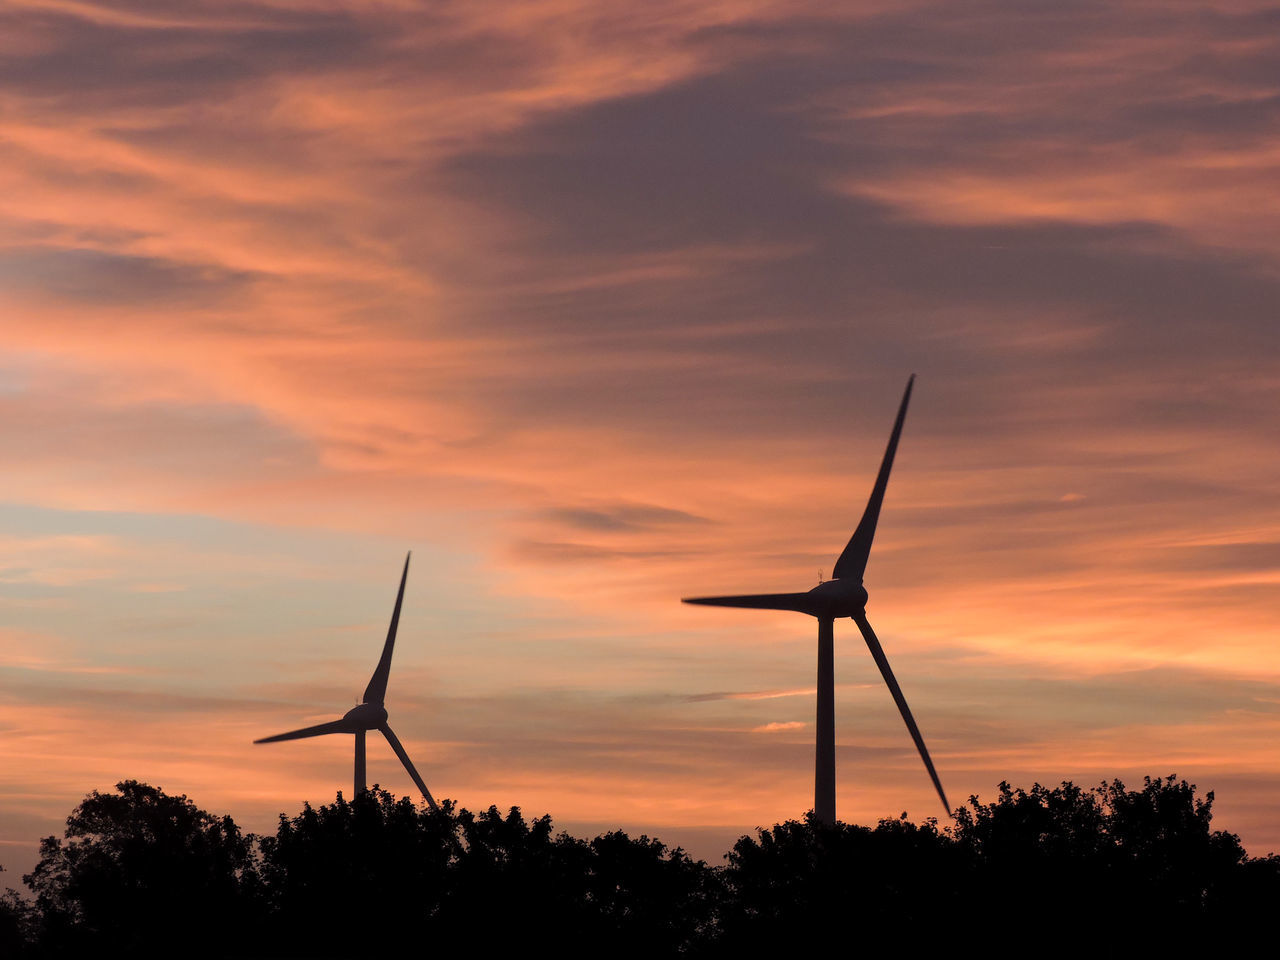 sunset, sky, cloud - sky, renewable energy, alternative energy, wind turbine, turbine, fuel and power generation, environmental conservation, wind power, silhouette, orange color, environment, nature, tree, plant, technology, beauty in nature, scenics - nature, no people, outdoors, sustainable resources